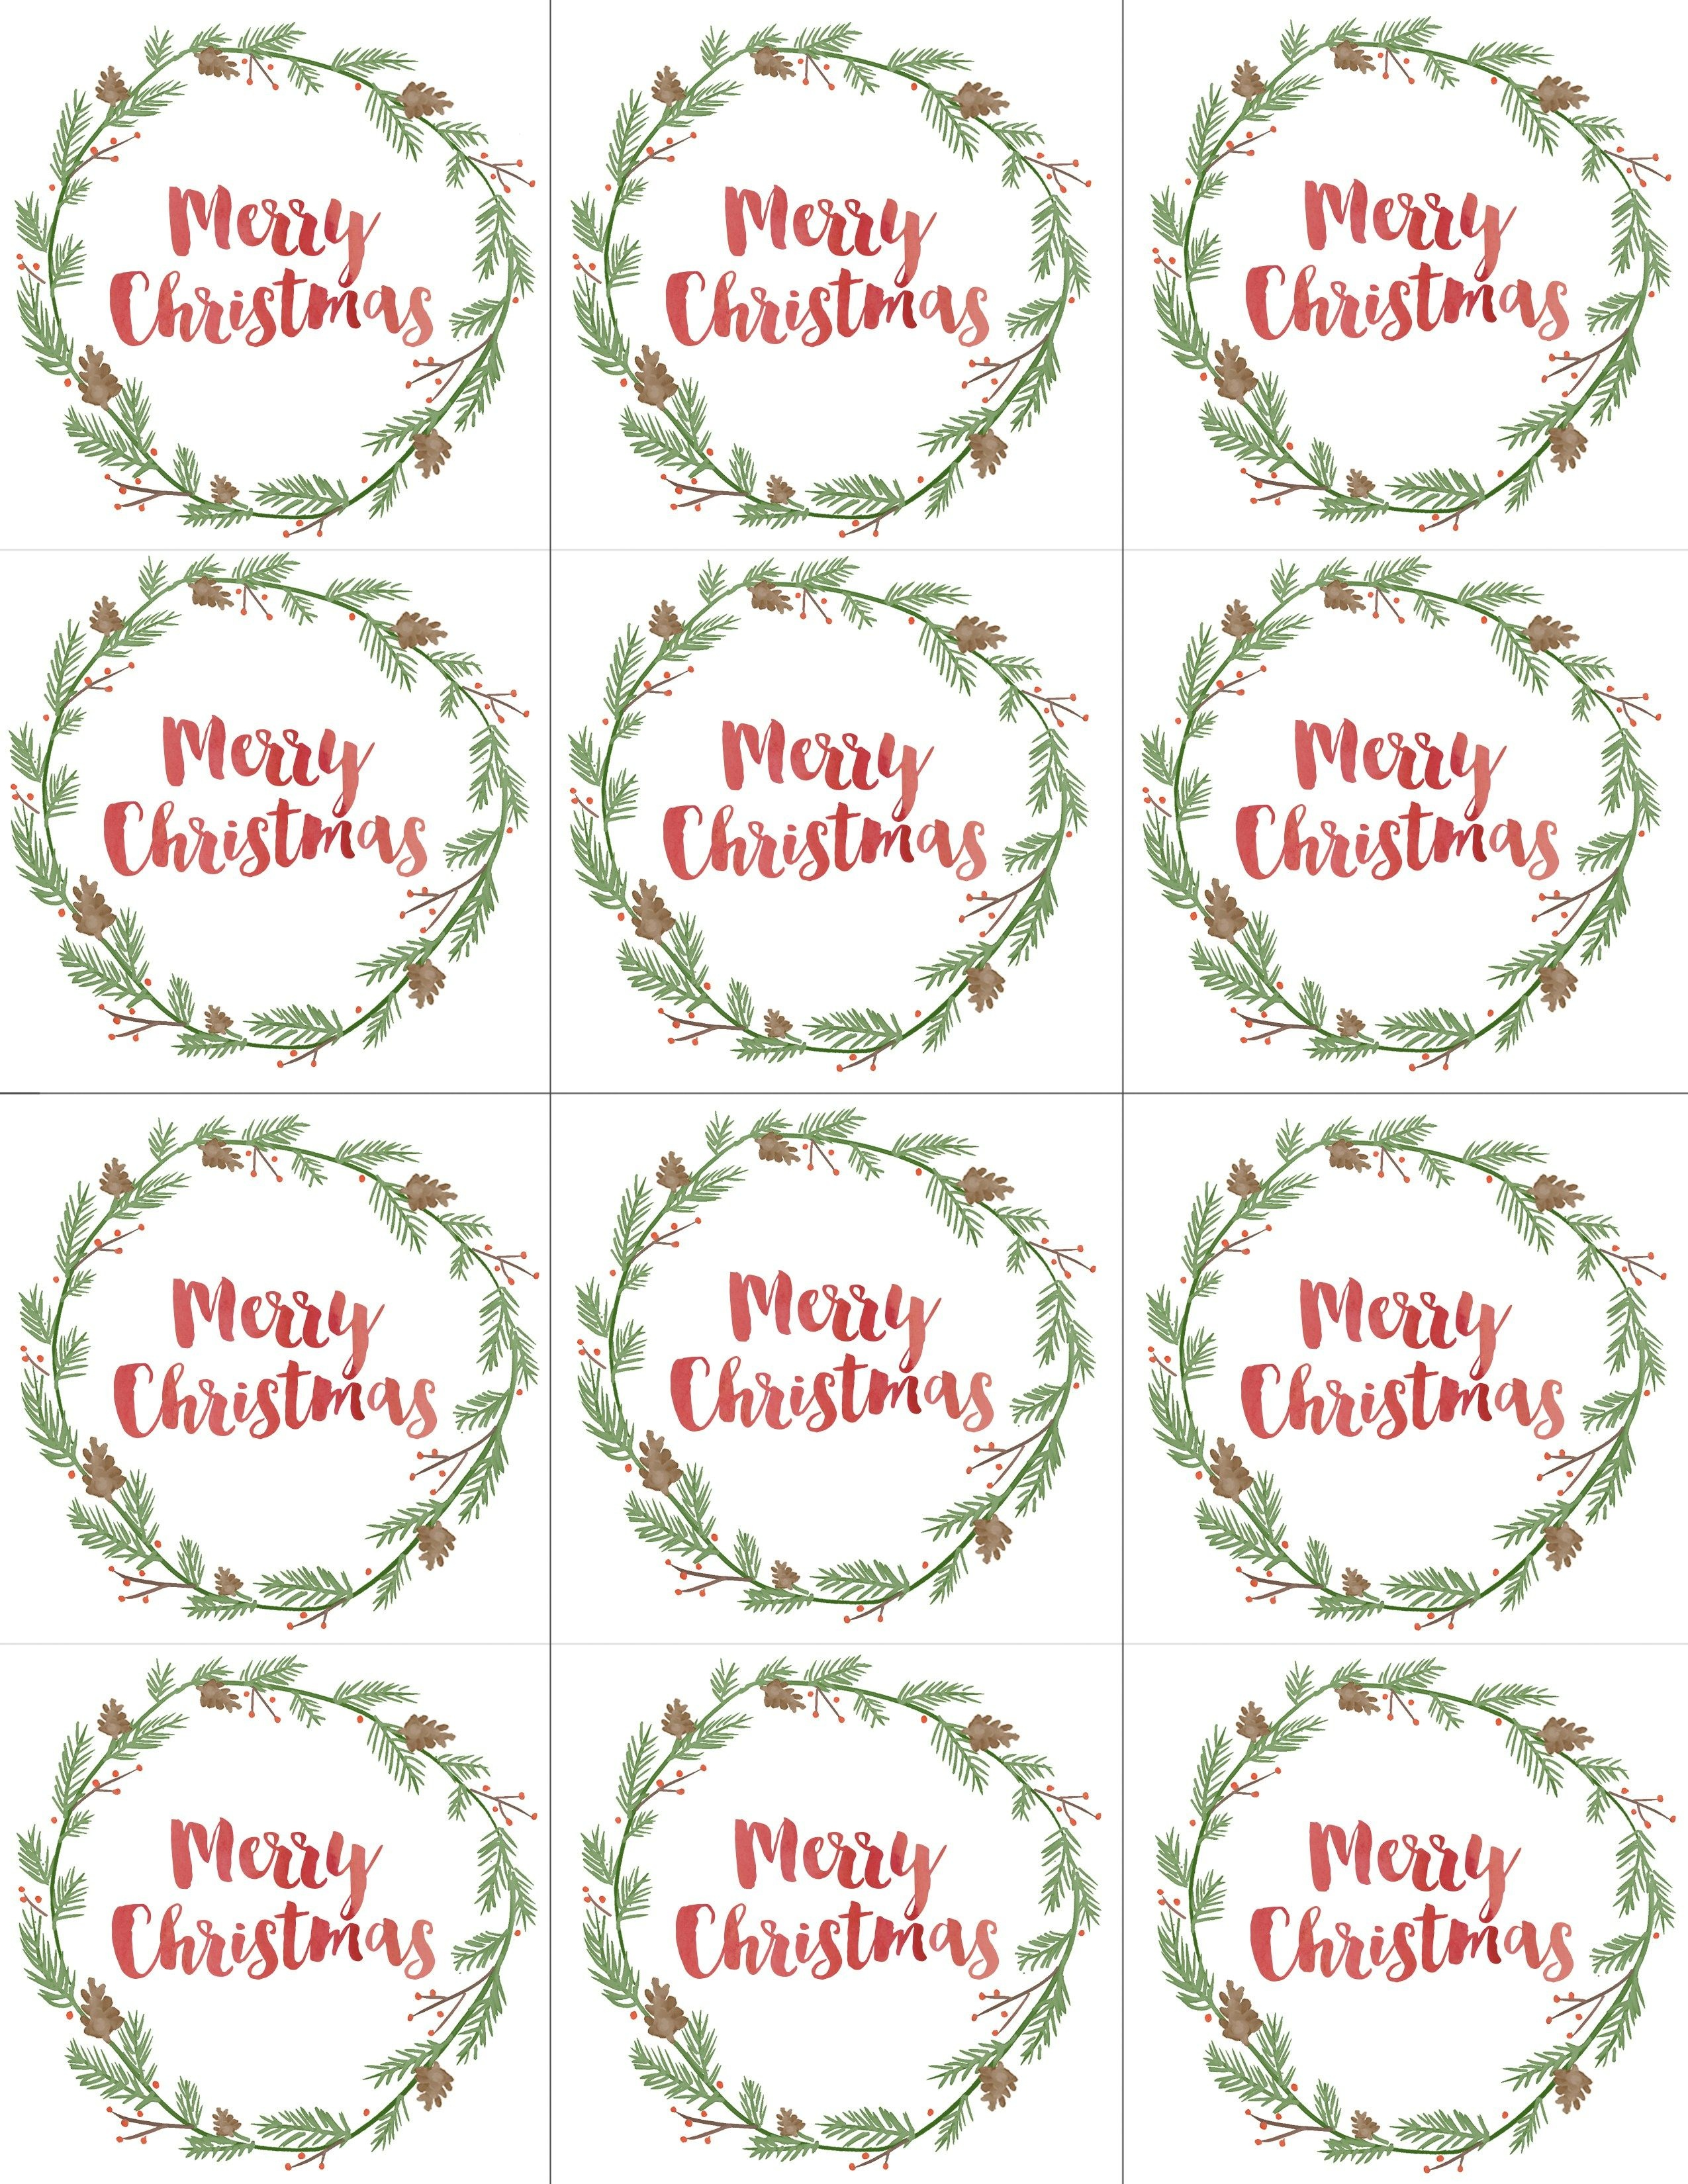 Hand Painted Gift Tags Free Printable | Free Print | Pinterest - Free Printable Christmas Pictures